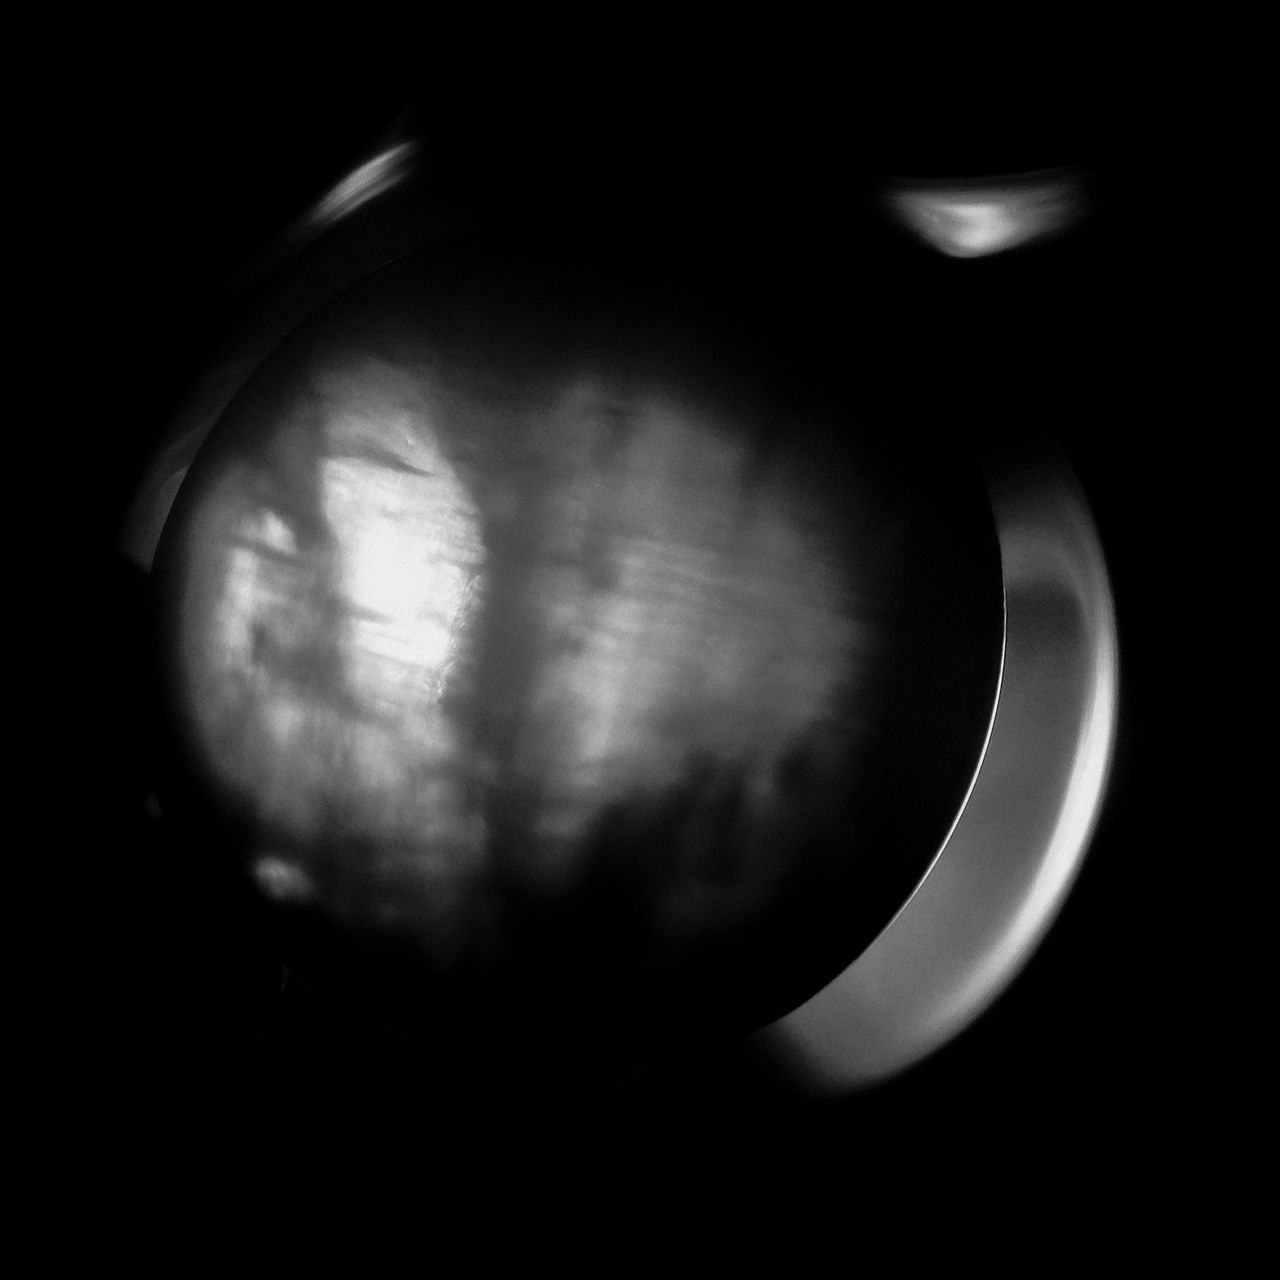 Lunar Eclipse Light And Shadow Abstract Dark Black And White Ghost